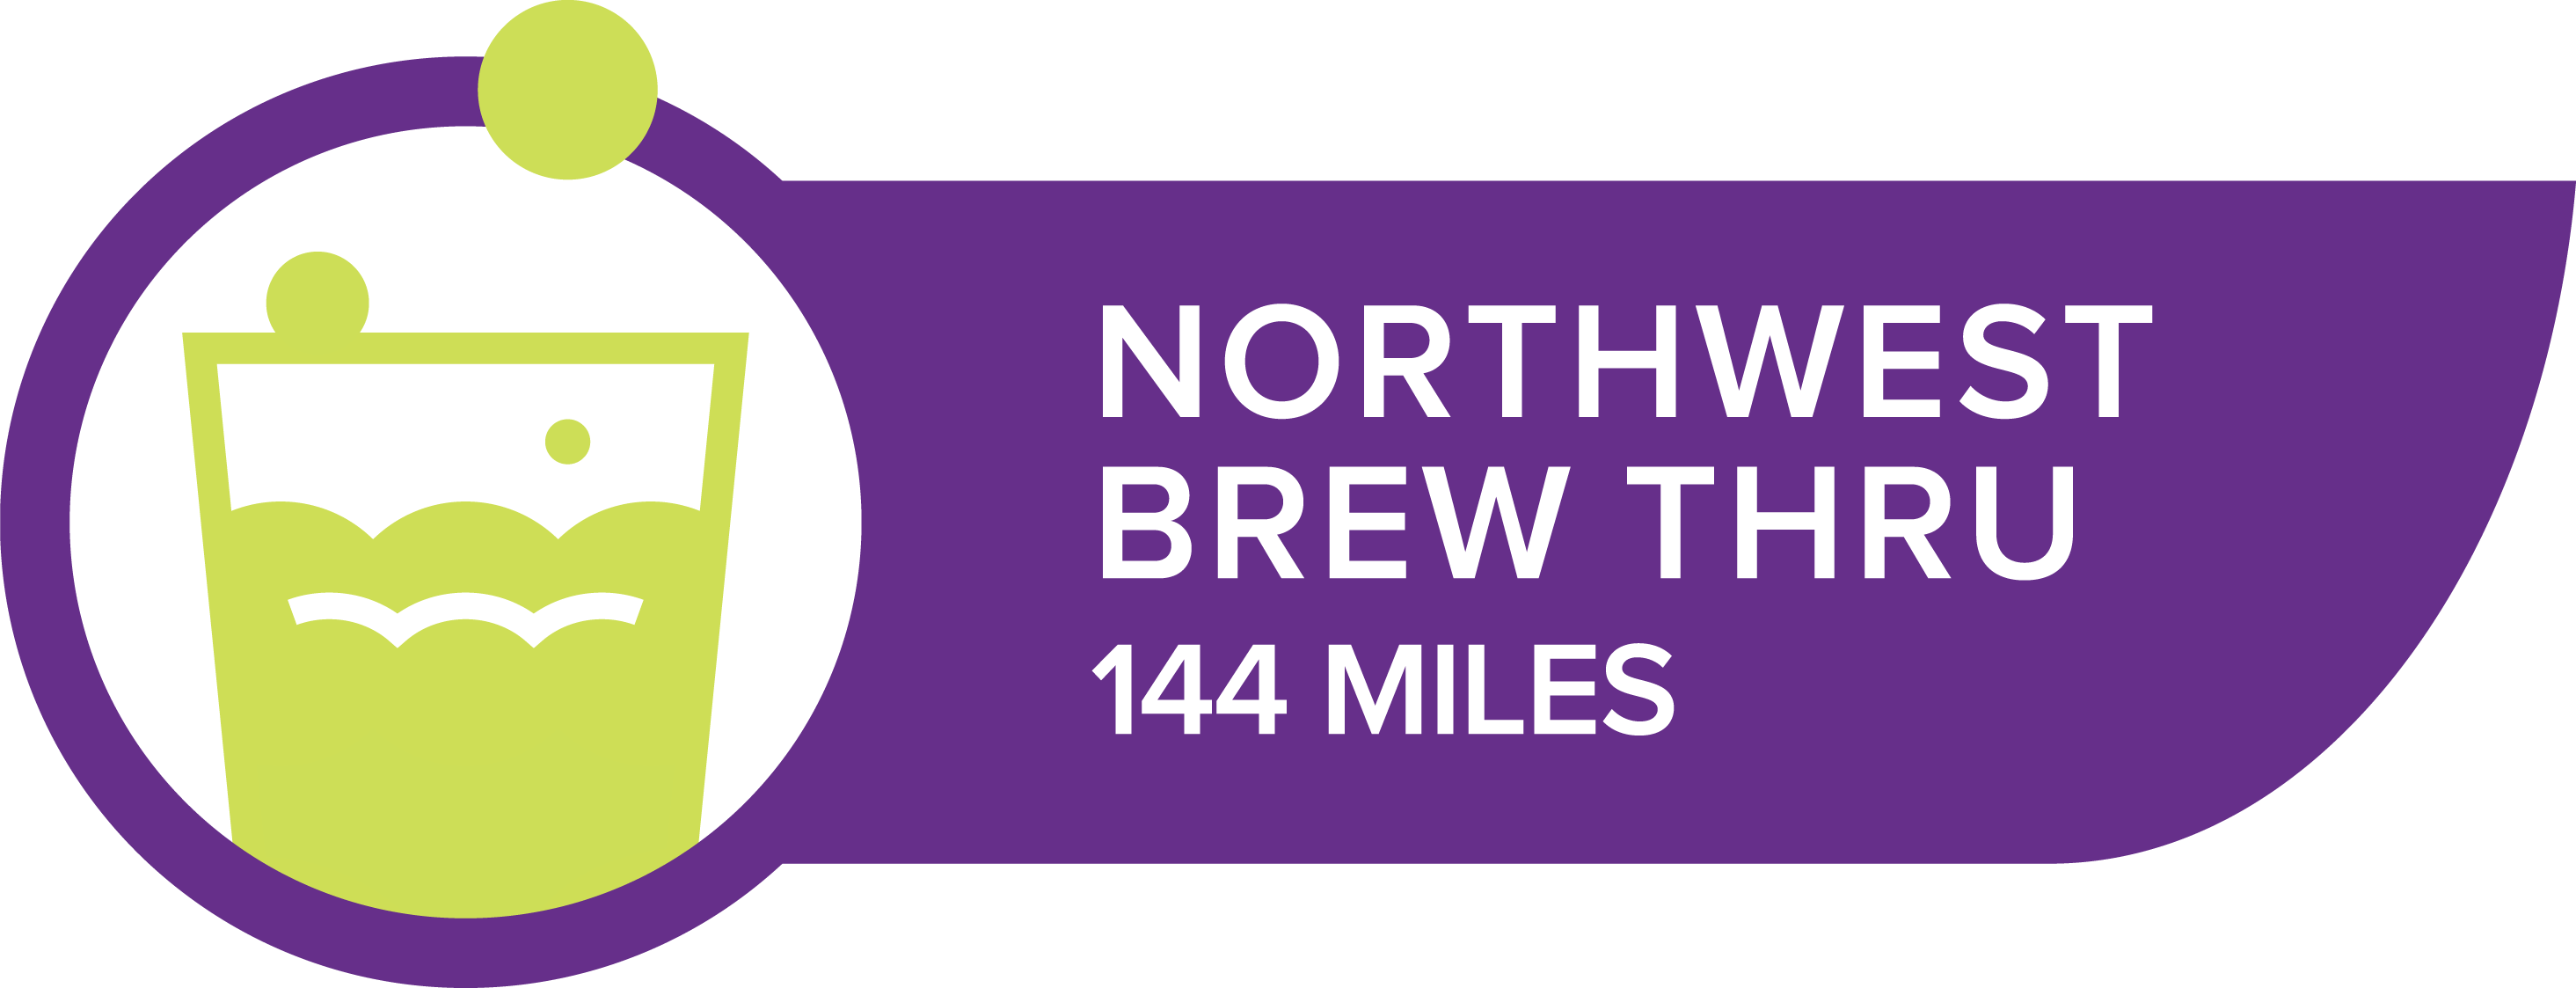 nw brew thru badge